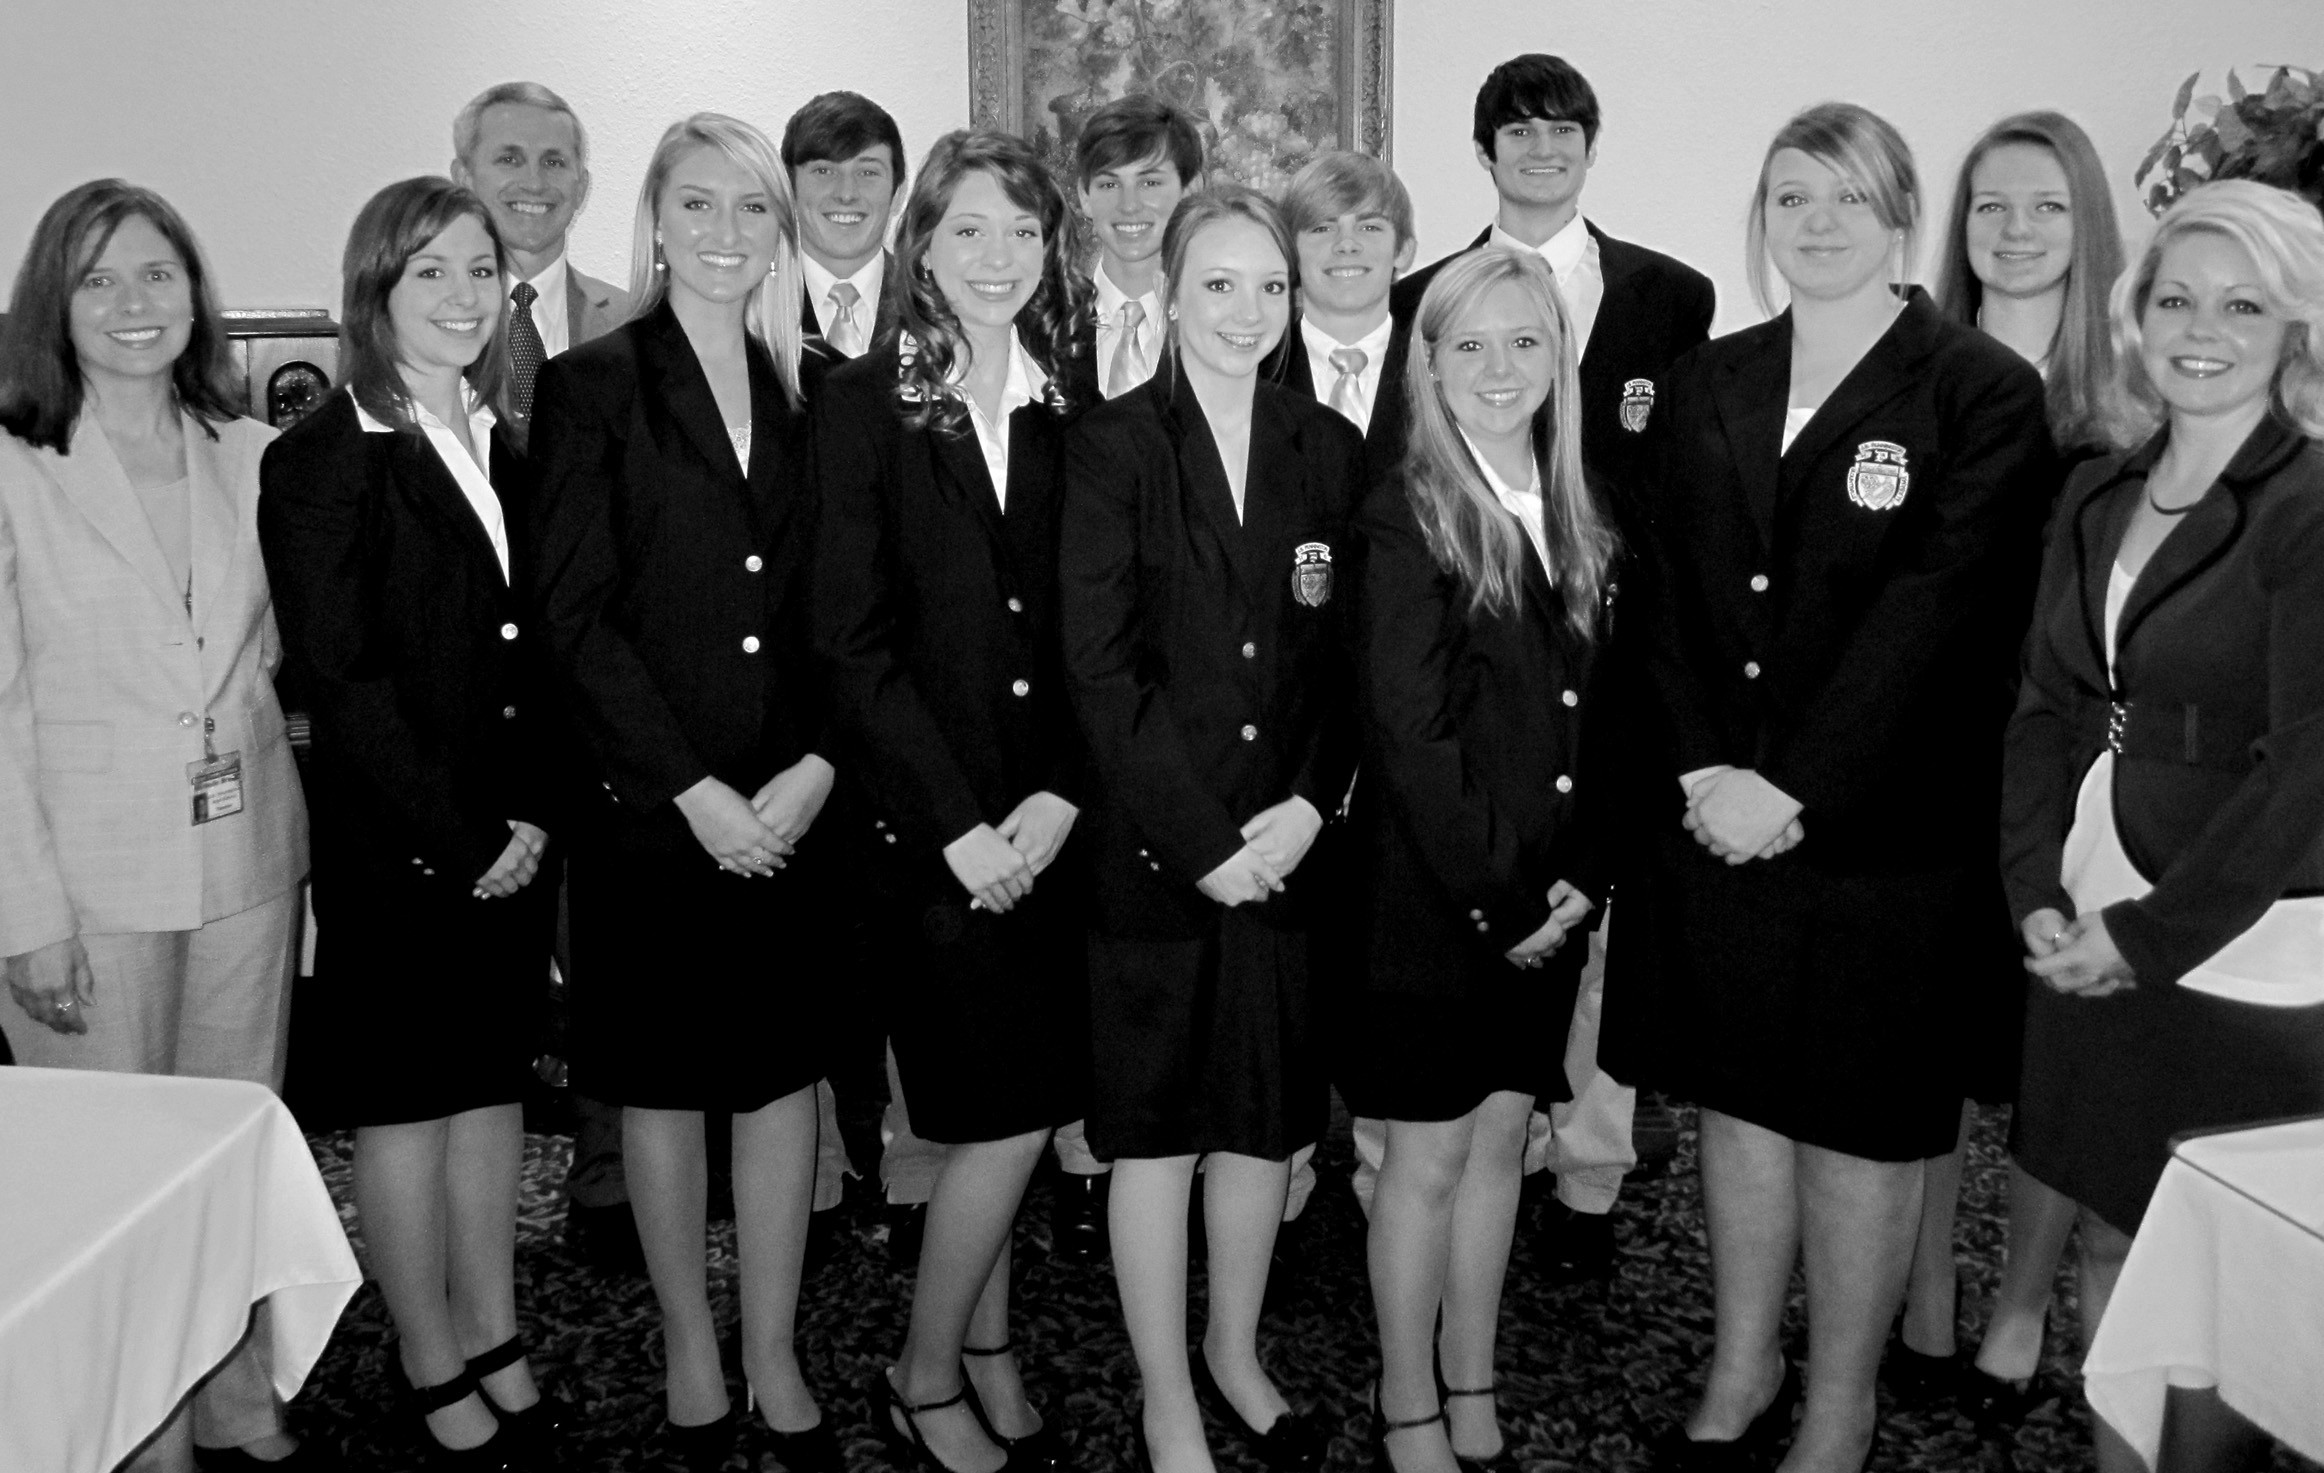 Eleven Pennington students, members of the Blount County Ambassadors program, served as greeters at the chamber of commerce breakfast on March 9 at Twin Oaks. Ambassadors at all county high schools are being introduced at chamber breakfasts this year to highlight the school leadership and citizenship program. Pictured are (front row from left) Michelle Brand (sponsor), Rhiannon Akins, Jessica Neill, Whitney Brown, Amelia Dorning, Christy Hightower, Ashley Bryant, Megan Sypniewski, and Jessica Musso (sponsor); (back row, from right) Hunter Cornelius, Joe Blocker, Andrew Vaughn, Ben Bailey, and chamber of commerce director and ambassador of another sort, Donny Ray. – Ron Gholson